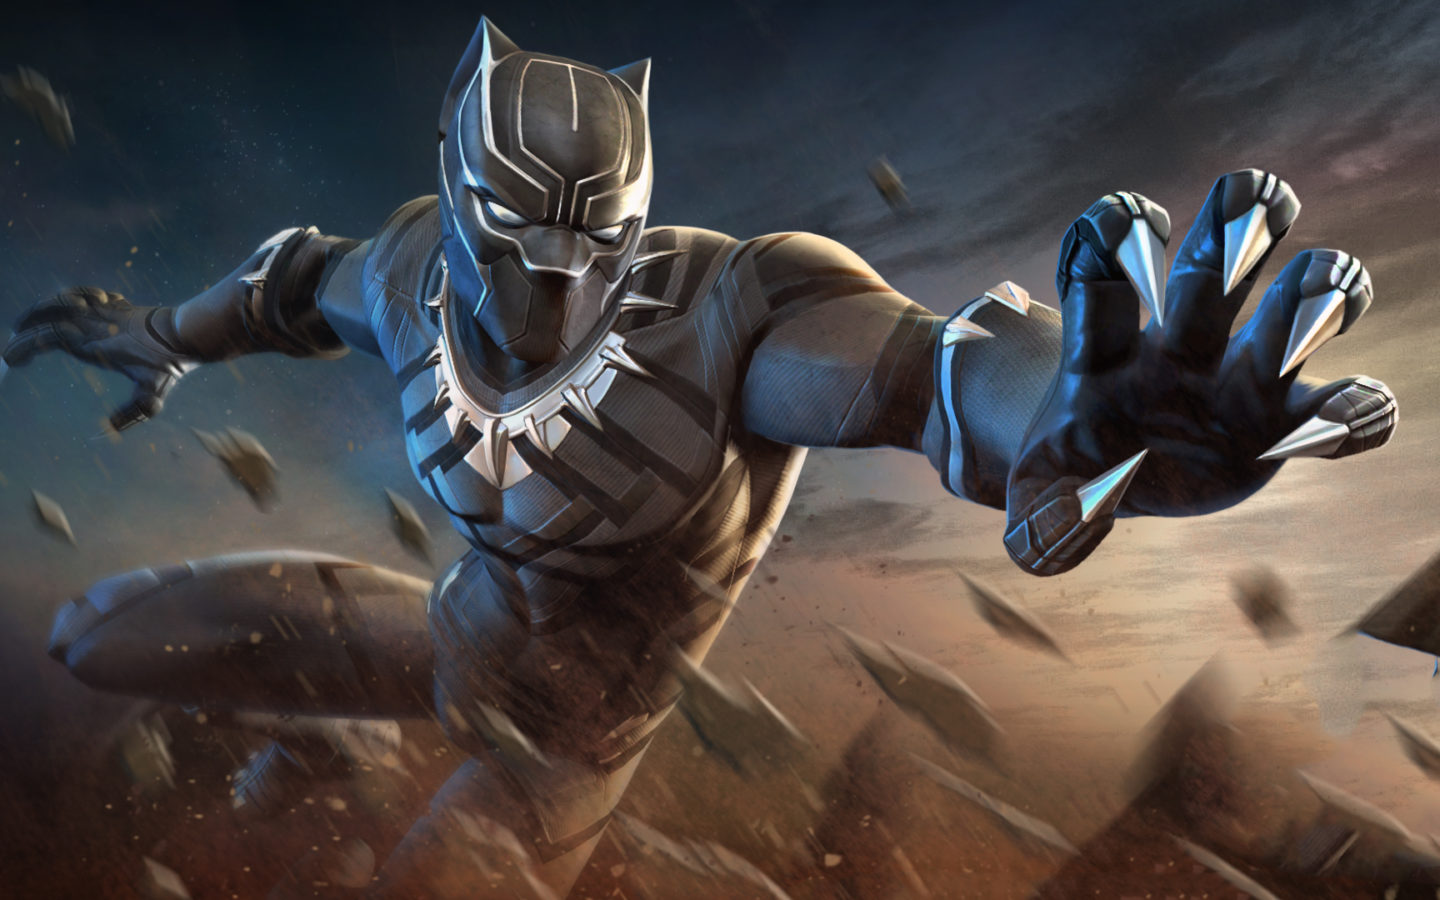 Black Spiderman Iphone Wallpaper Black Panther Marvel Contest Of Champions Wallpapers Hd